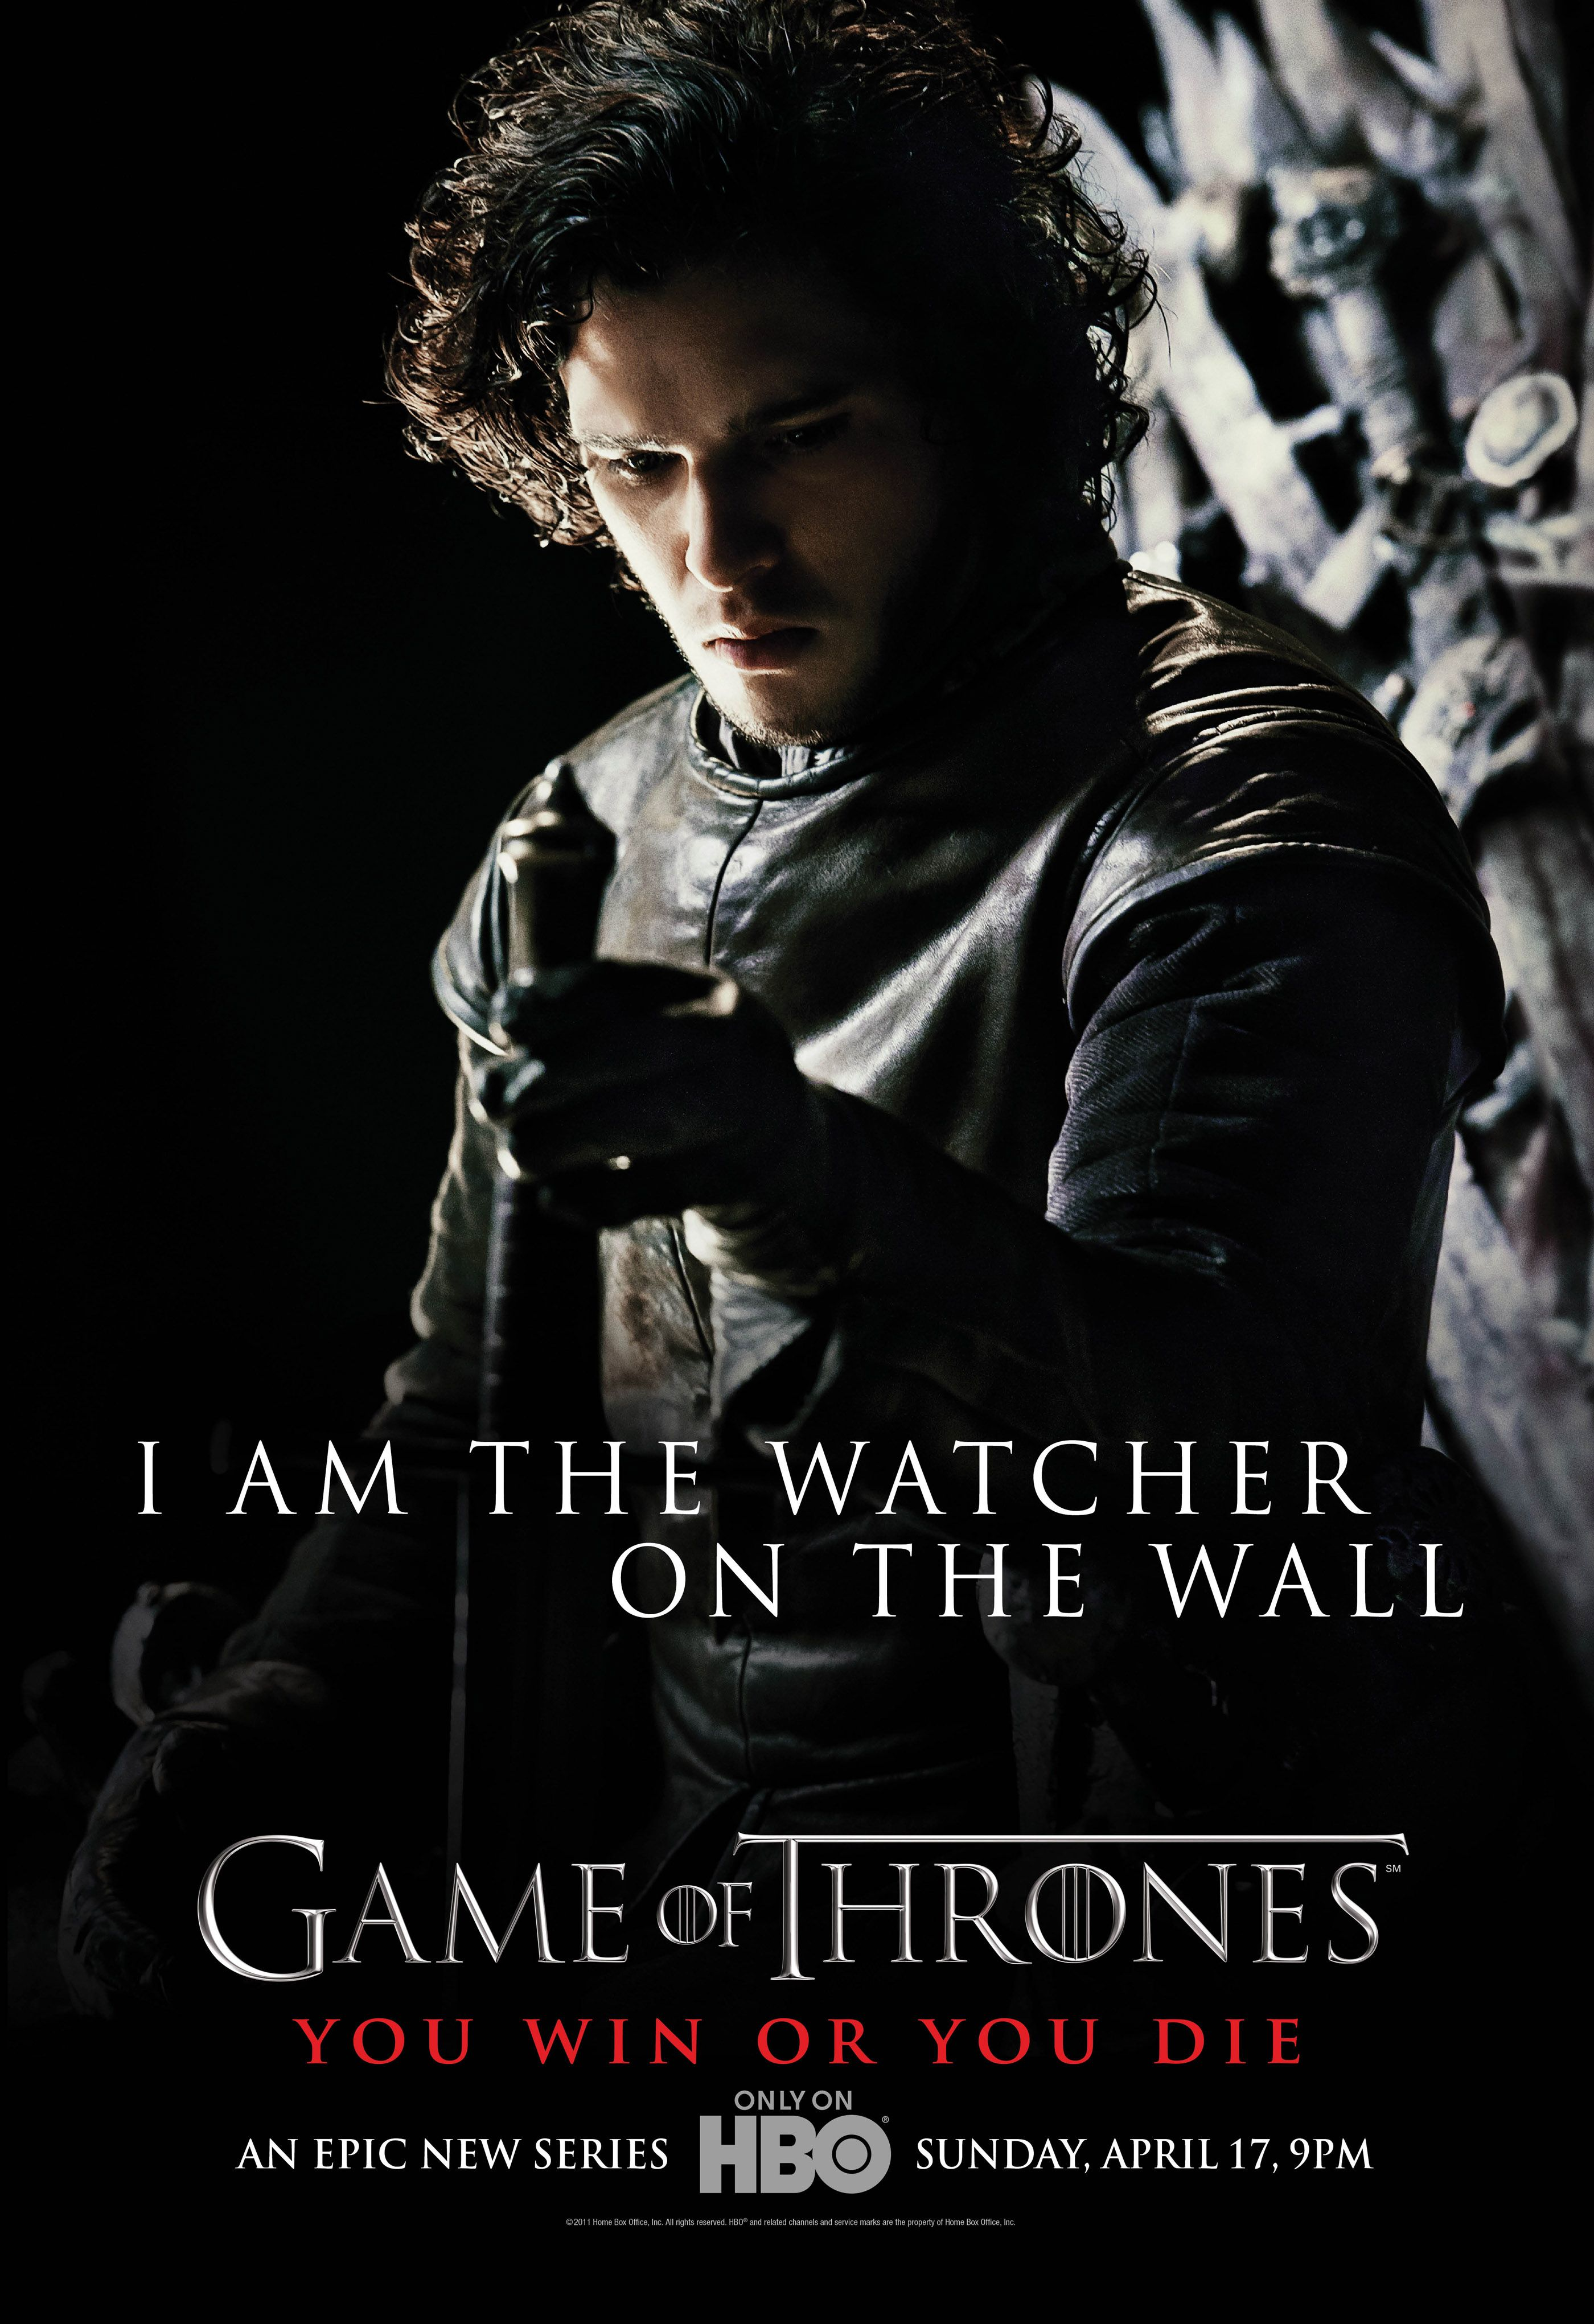 News Entertainment Music Movies Celebrity Watchers On The Wall Jon Snow Hbo